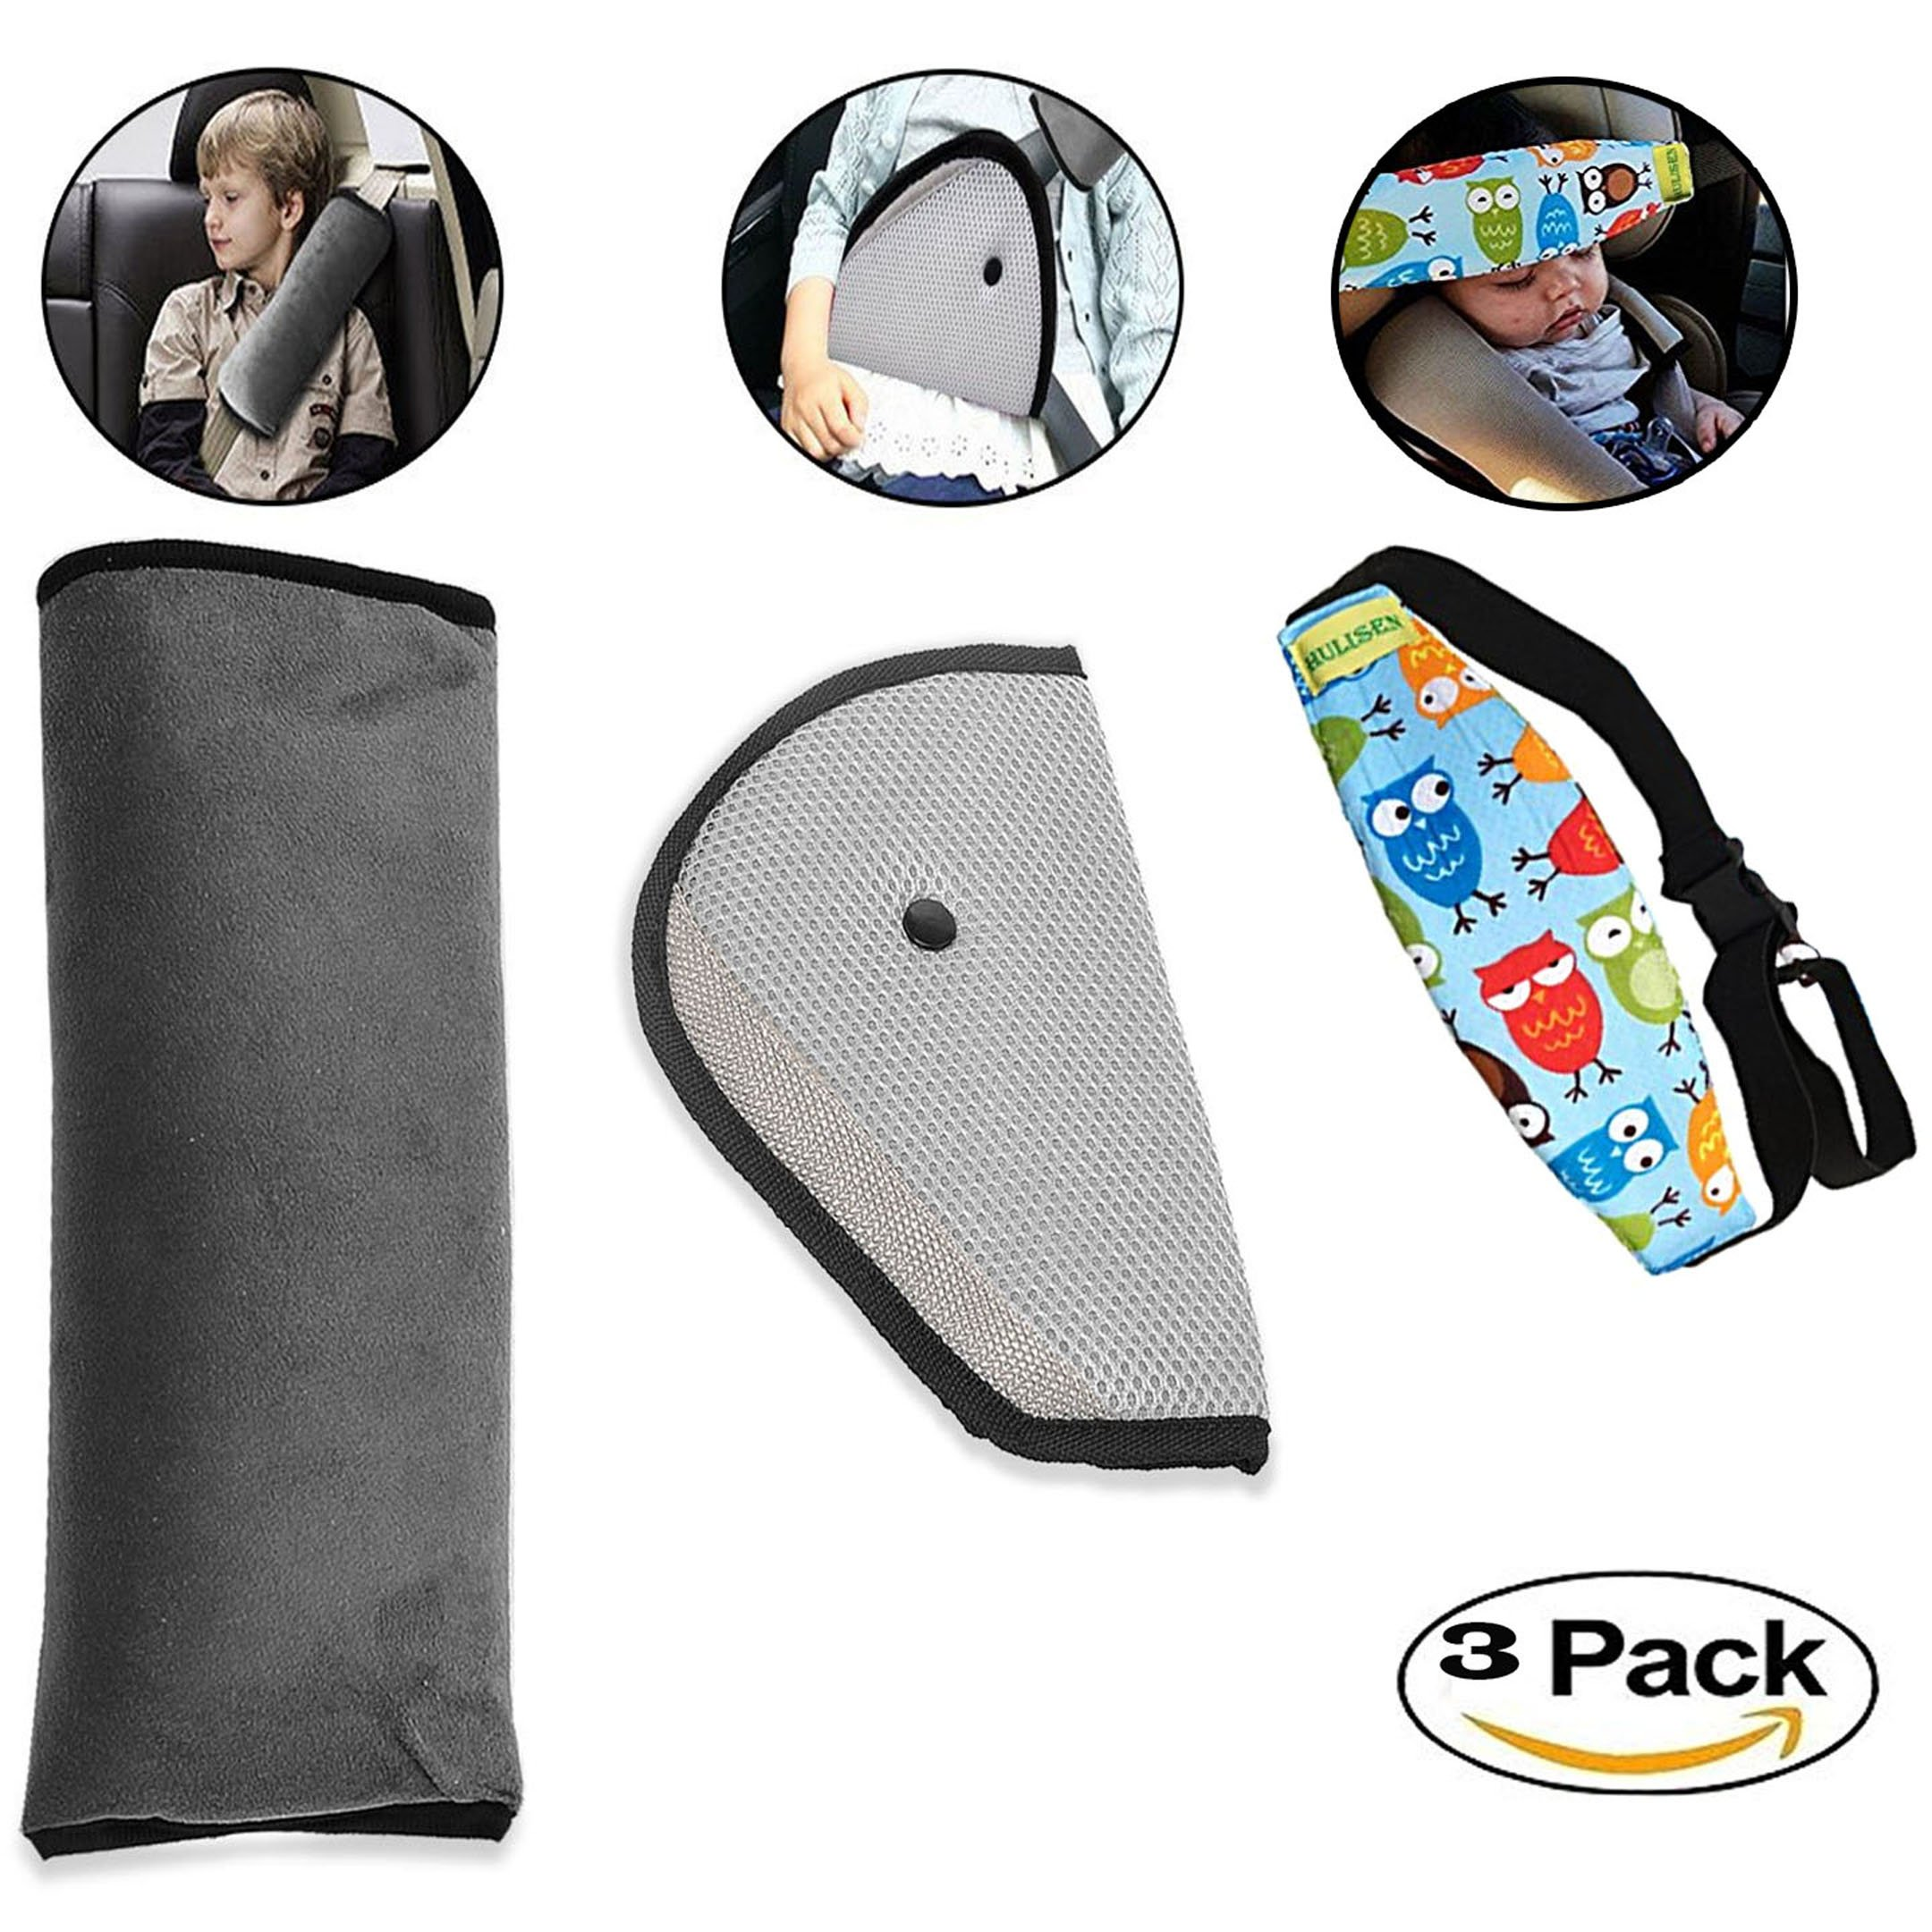 Smilify Car Seatbelt Pillow Cover for Kids - Kids Seatbelts Adjuster for Toddlers and for All Cars Provide + Infants and Baby Head Support